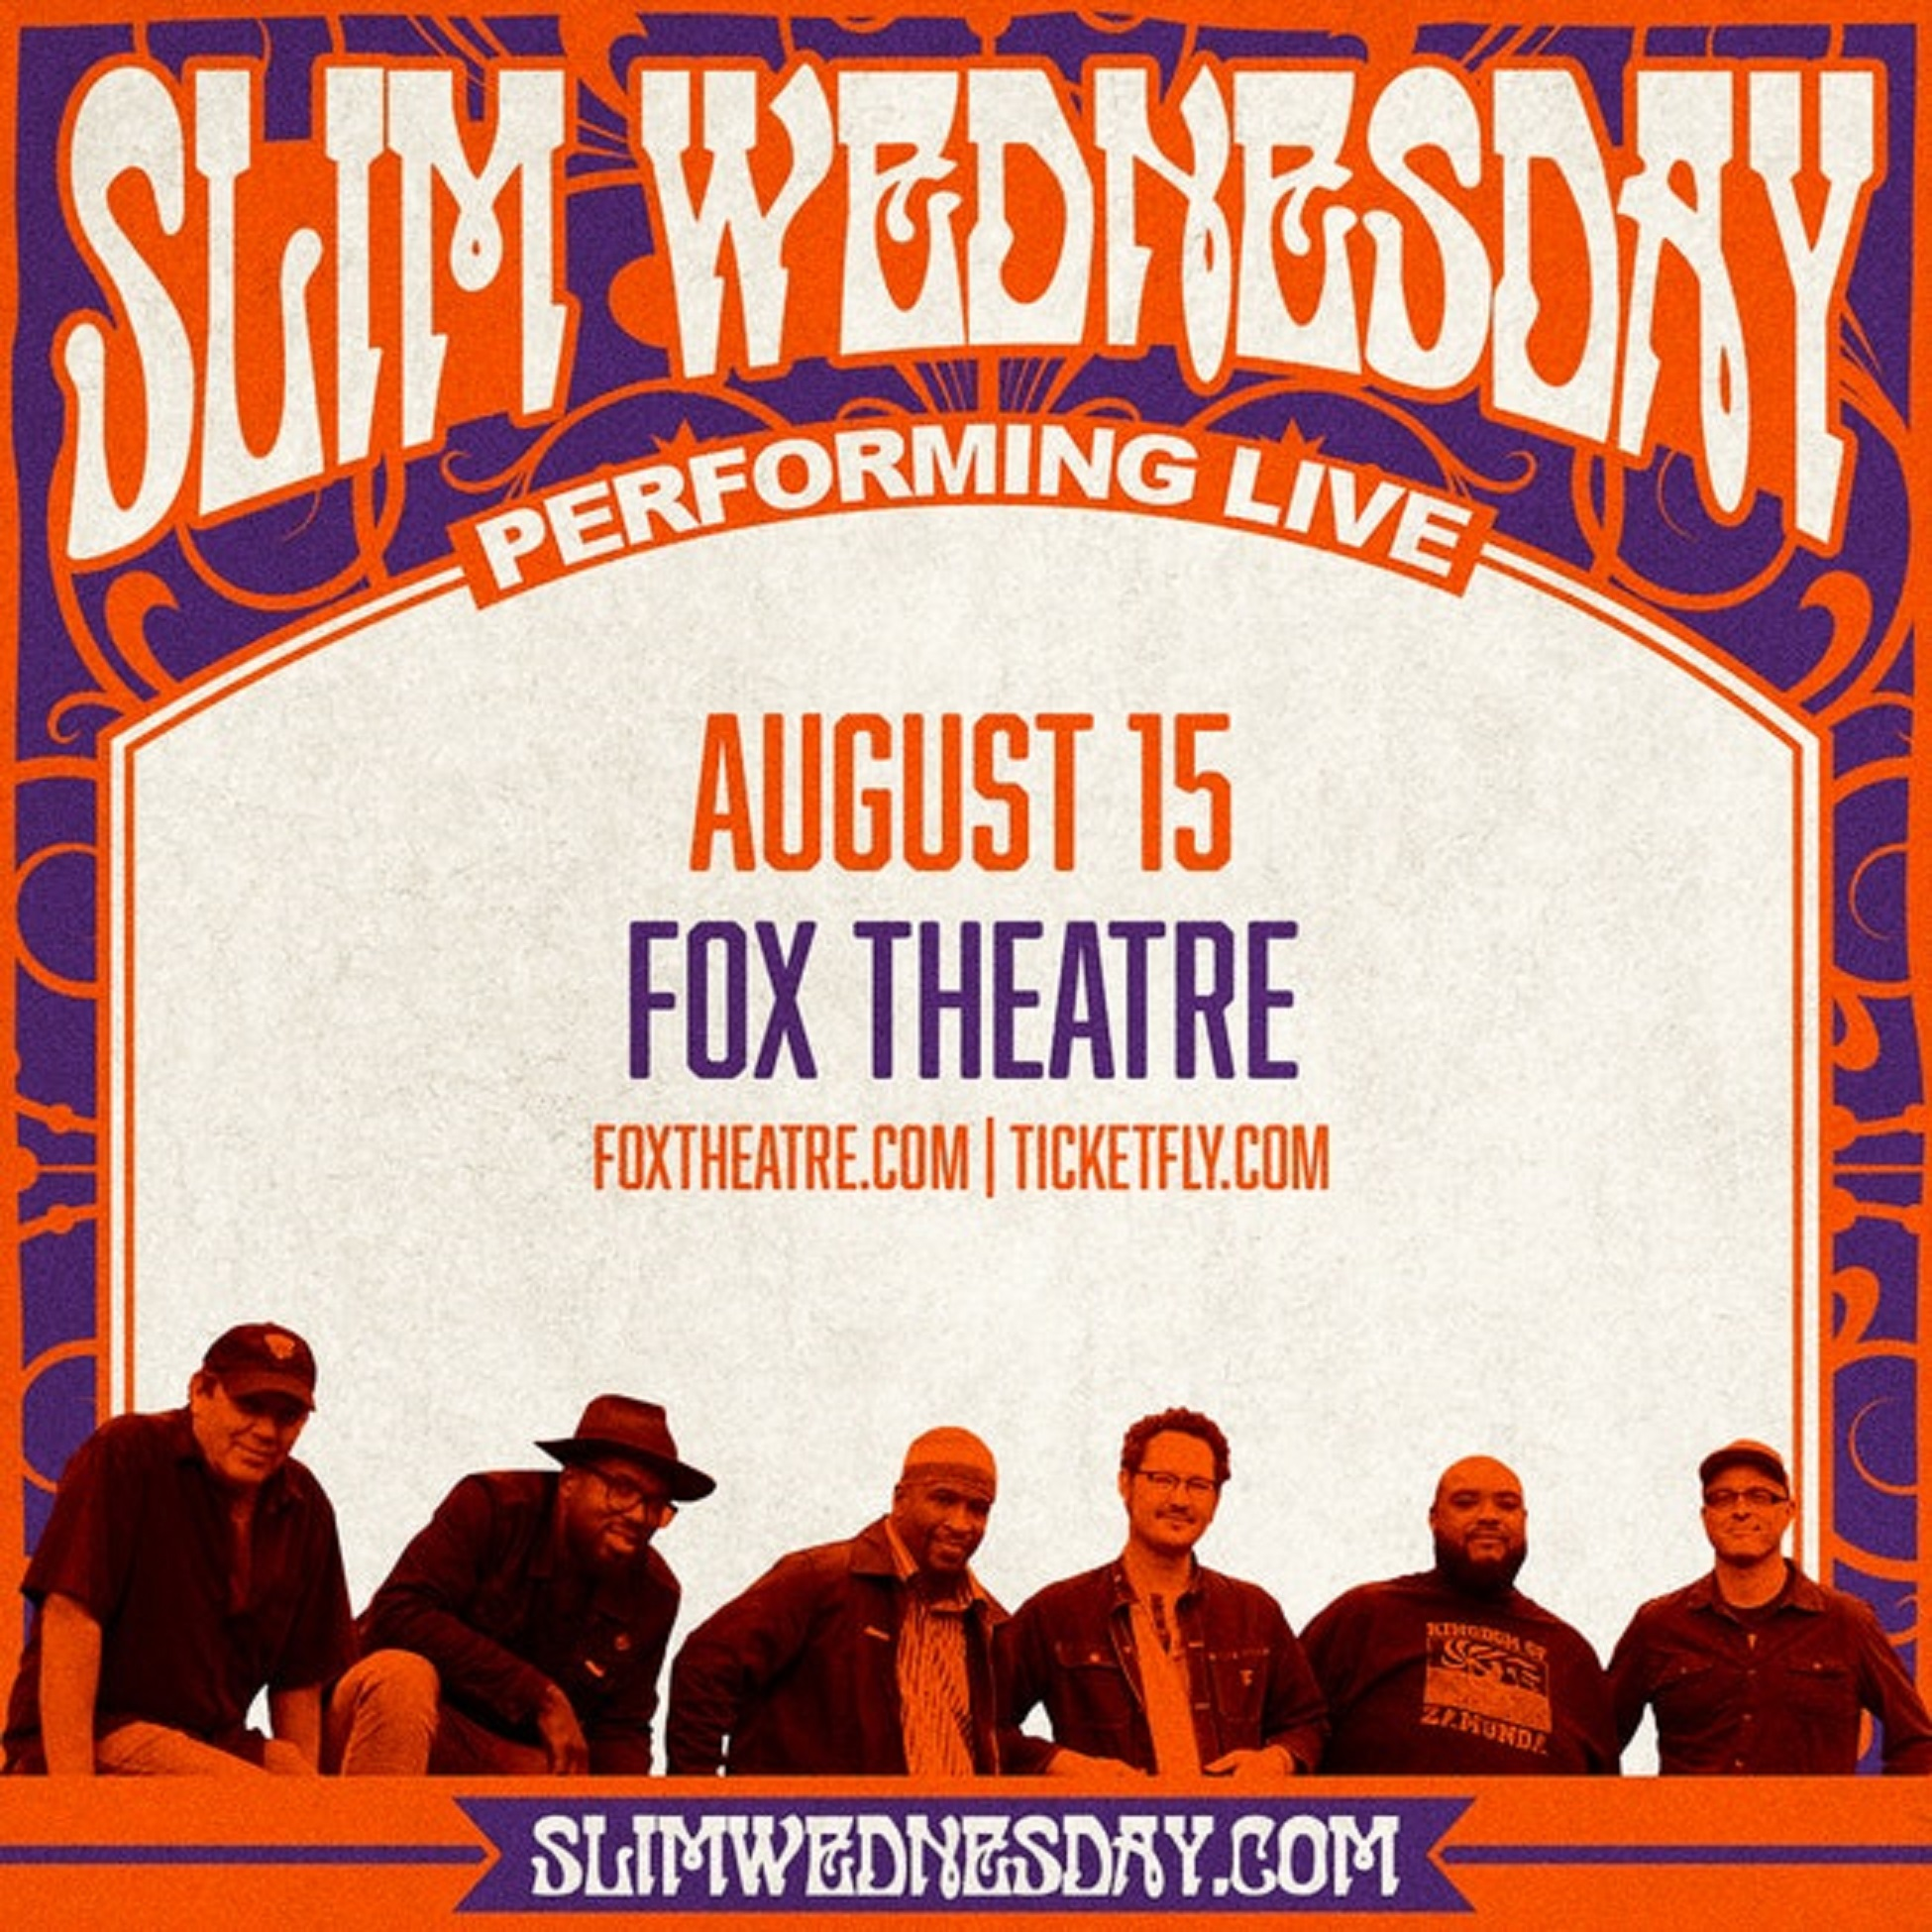 SLIM WEDNESDAY FT. JOJO HERMANN OF WIDESPREAD PANIC